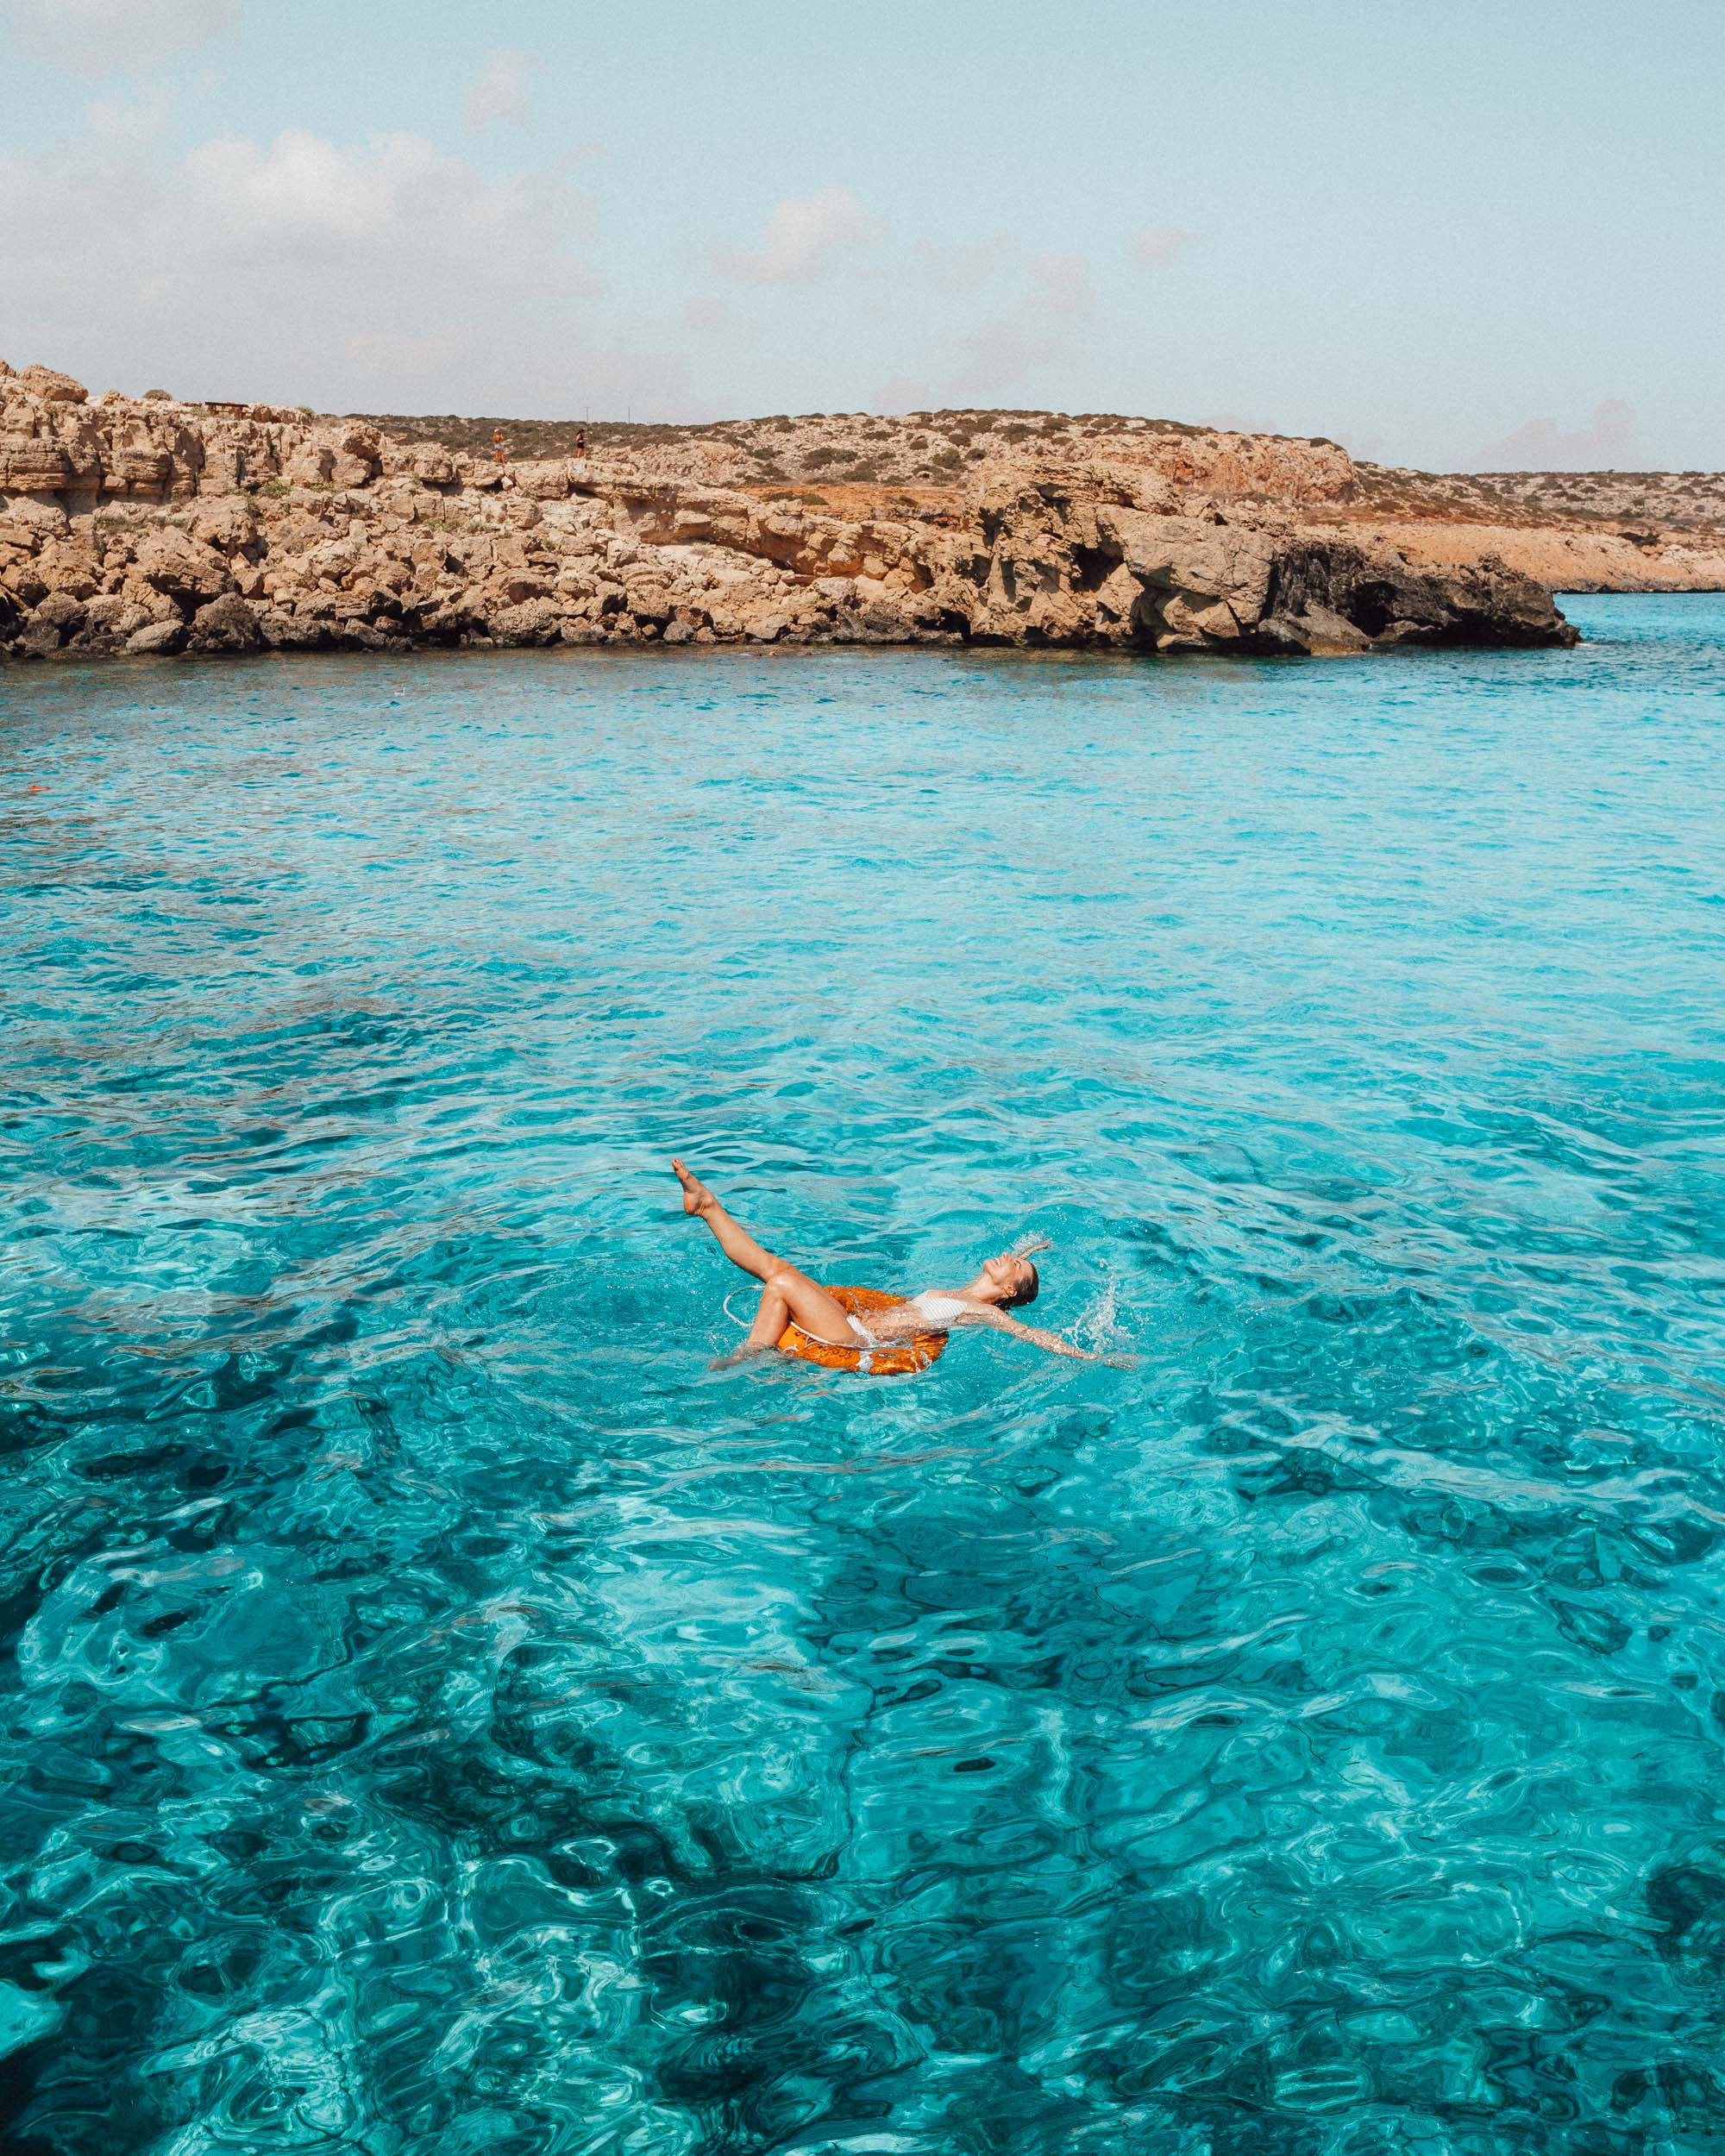 Blue water in Ayia Napa Cyprus via @finduslost